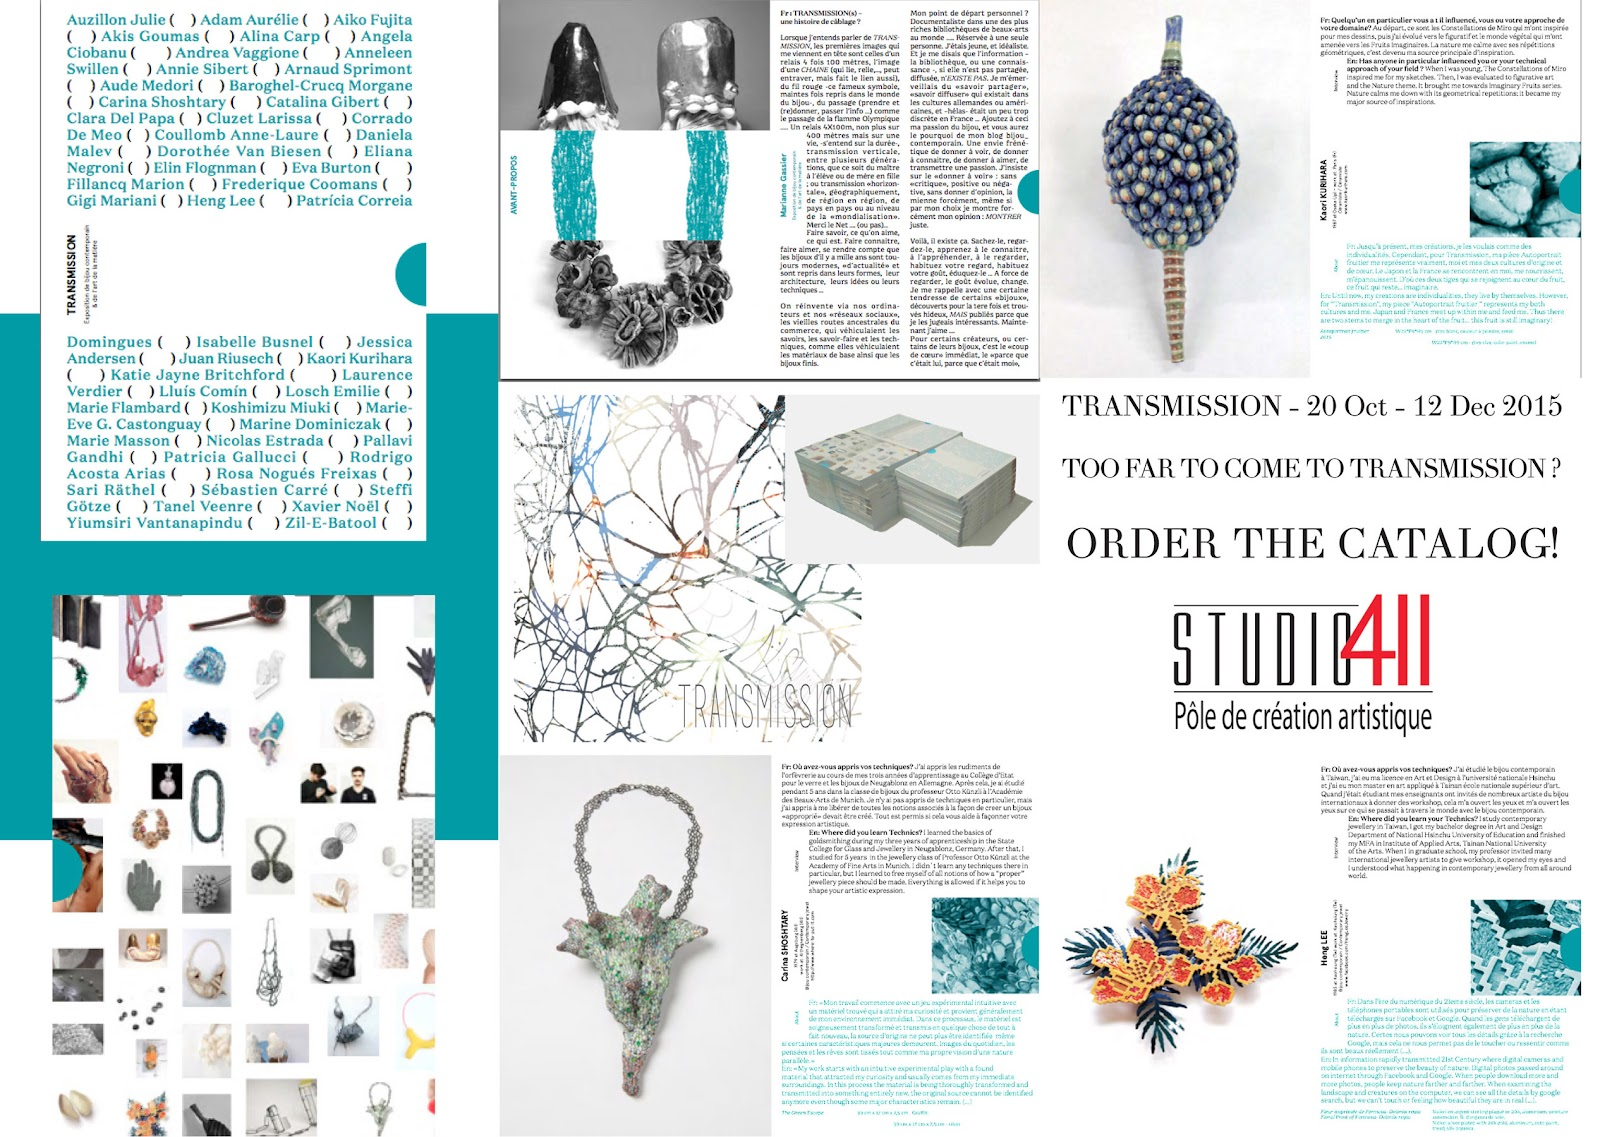 Catalogue : Transmission - exhibition of Art Jewellery and fine Art (20 Oct - 12 Dec 2015) Montpellier France